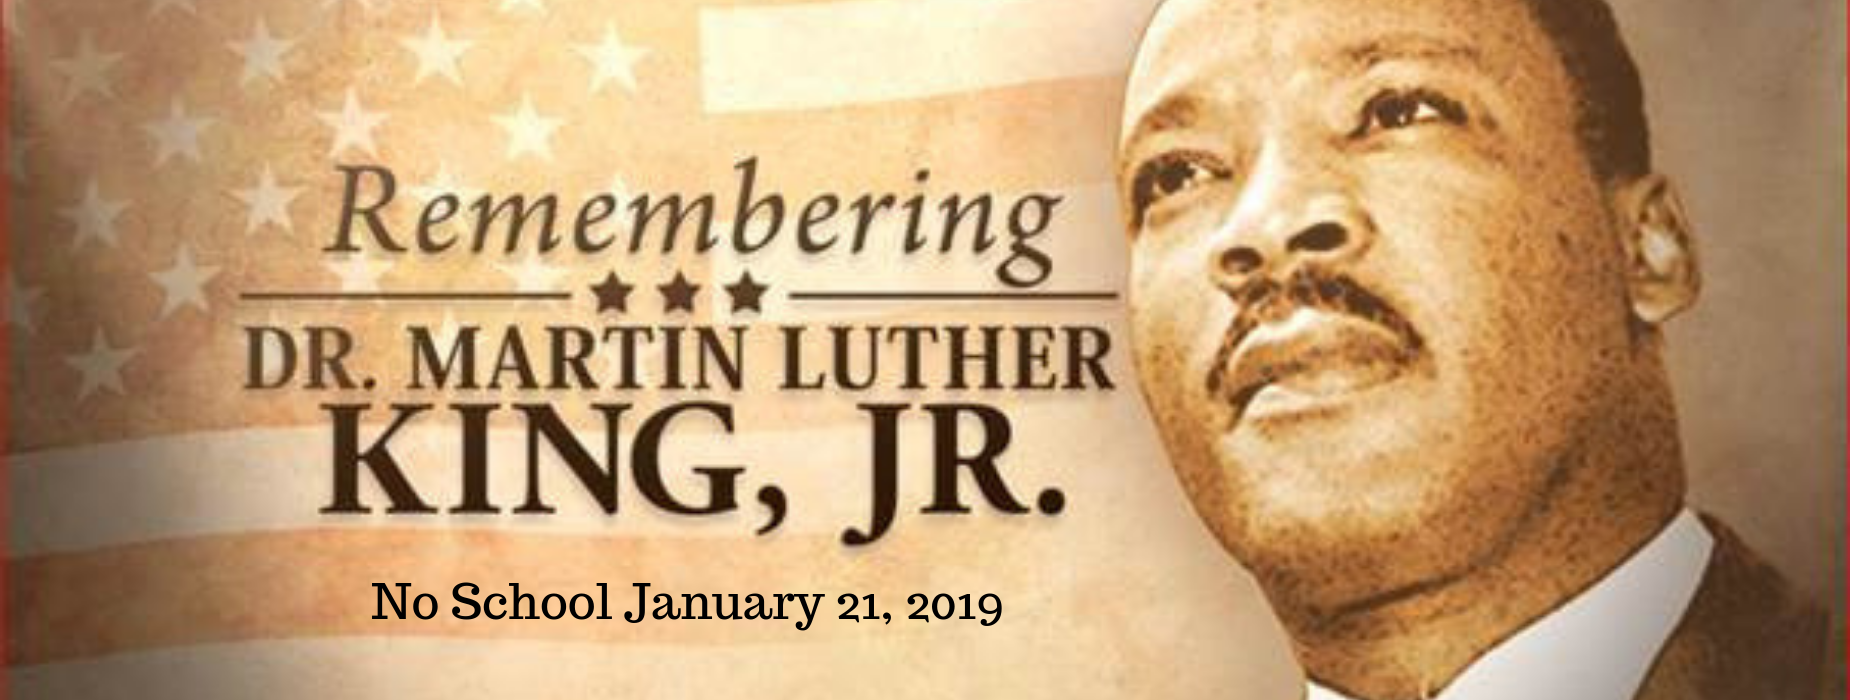 no school january 21, 2019 - Martin Luther King DAy